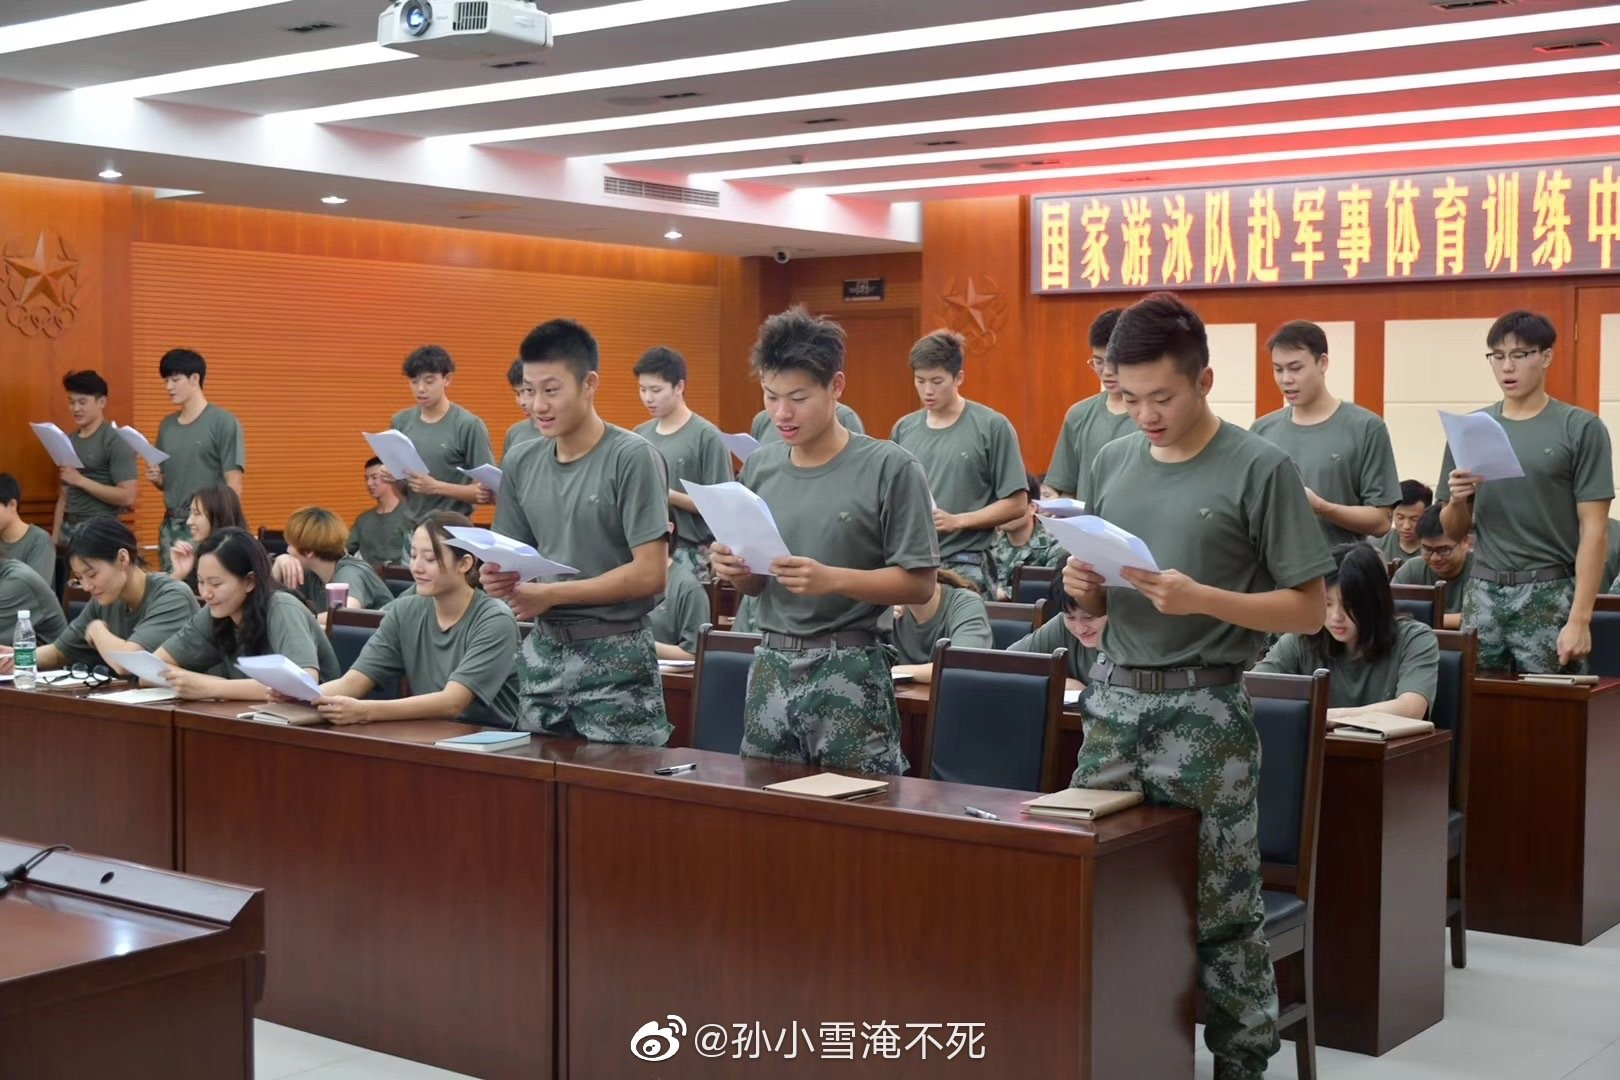 China Swim Team On Its 2nd Military Exercise For 'Love Of Party & Country' On Way To Tokyo2020